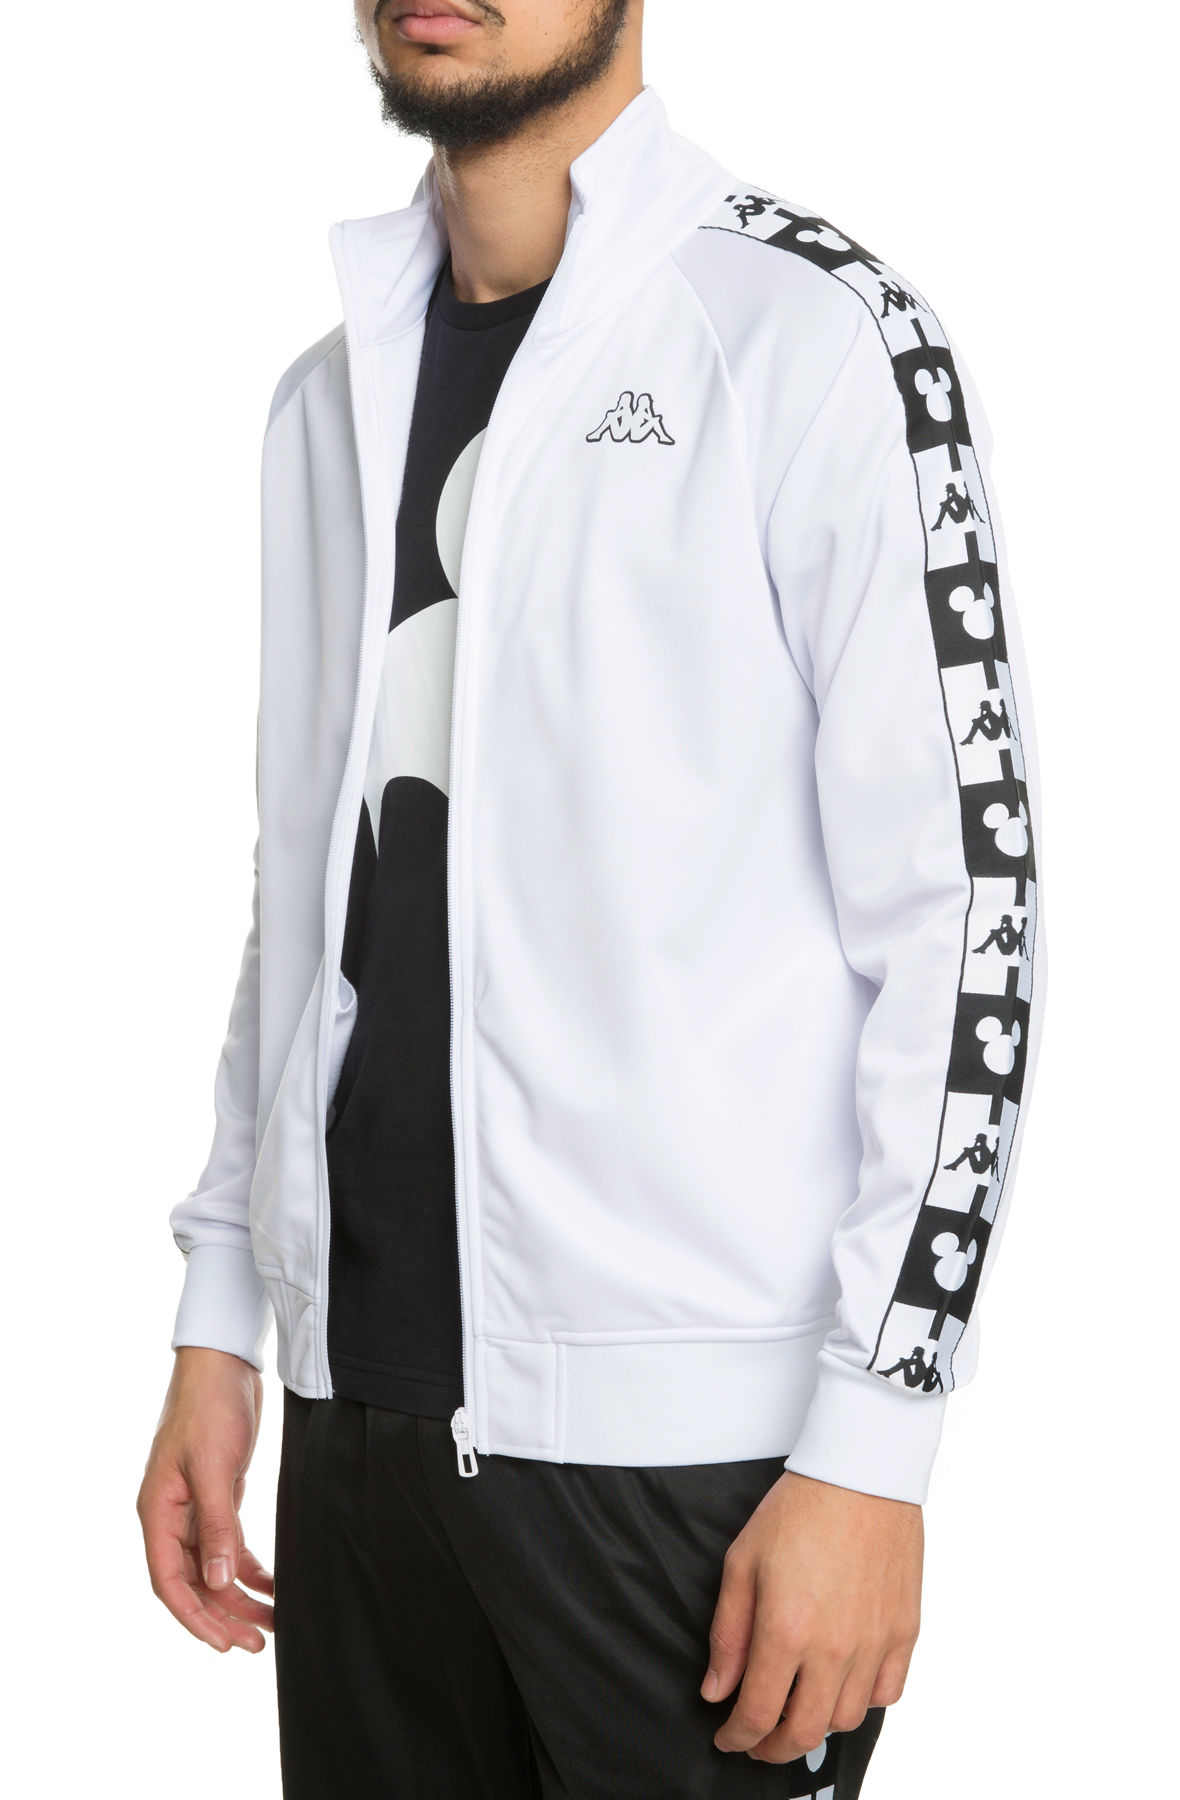 Image of The Authentic Anne Disney Jacket in White